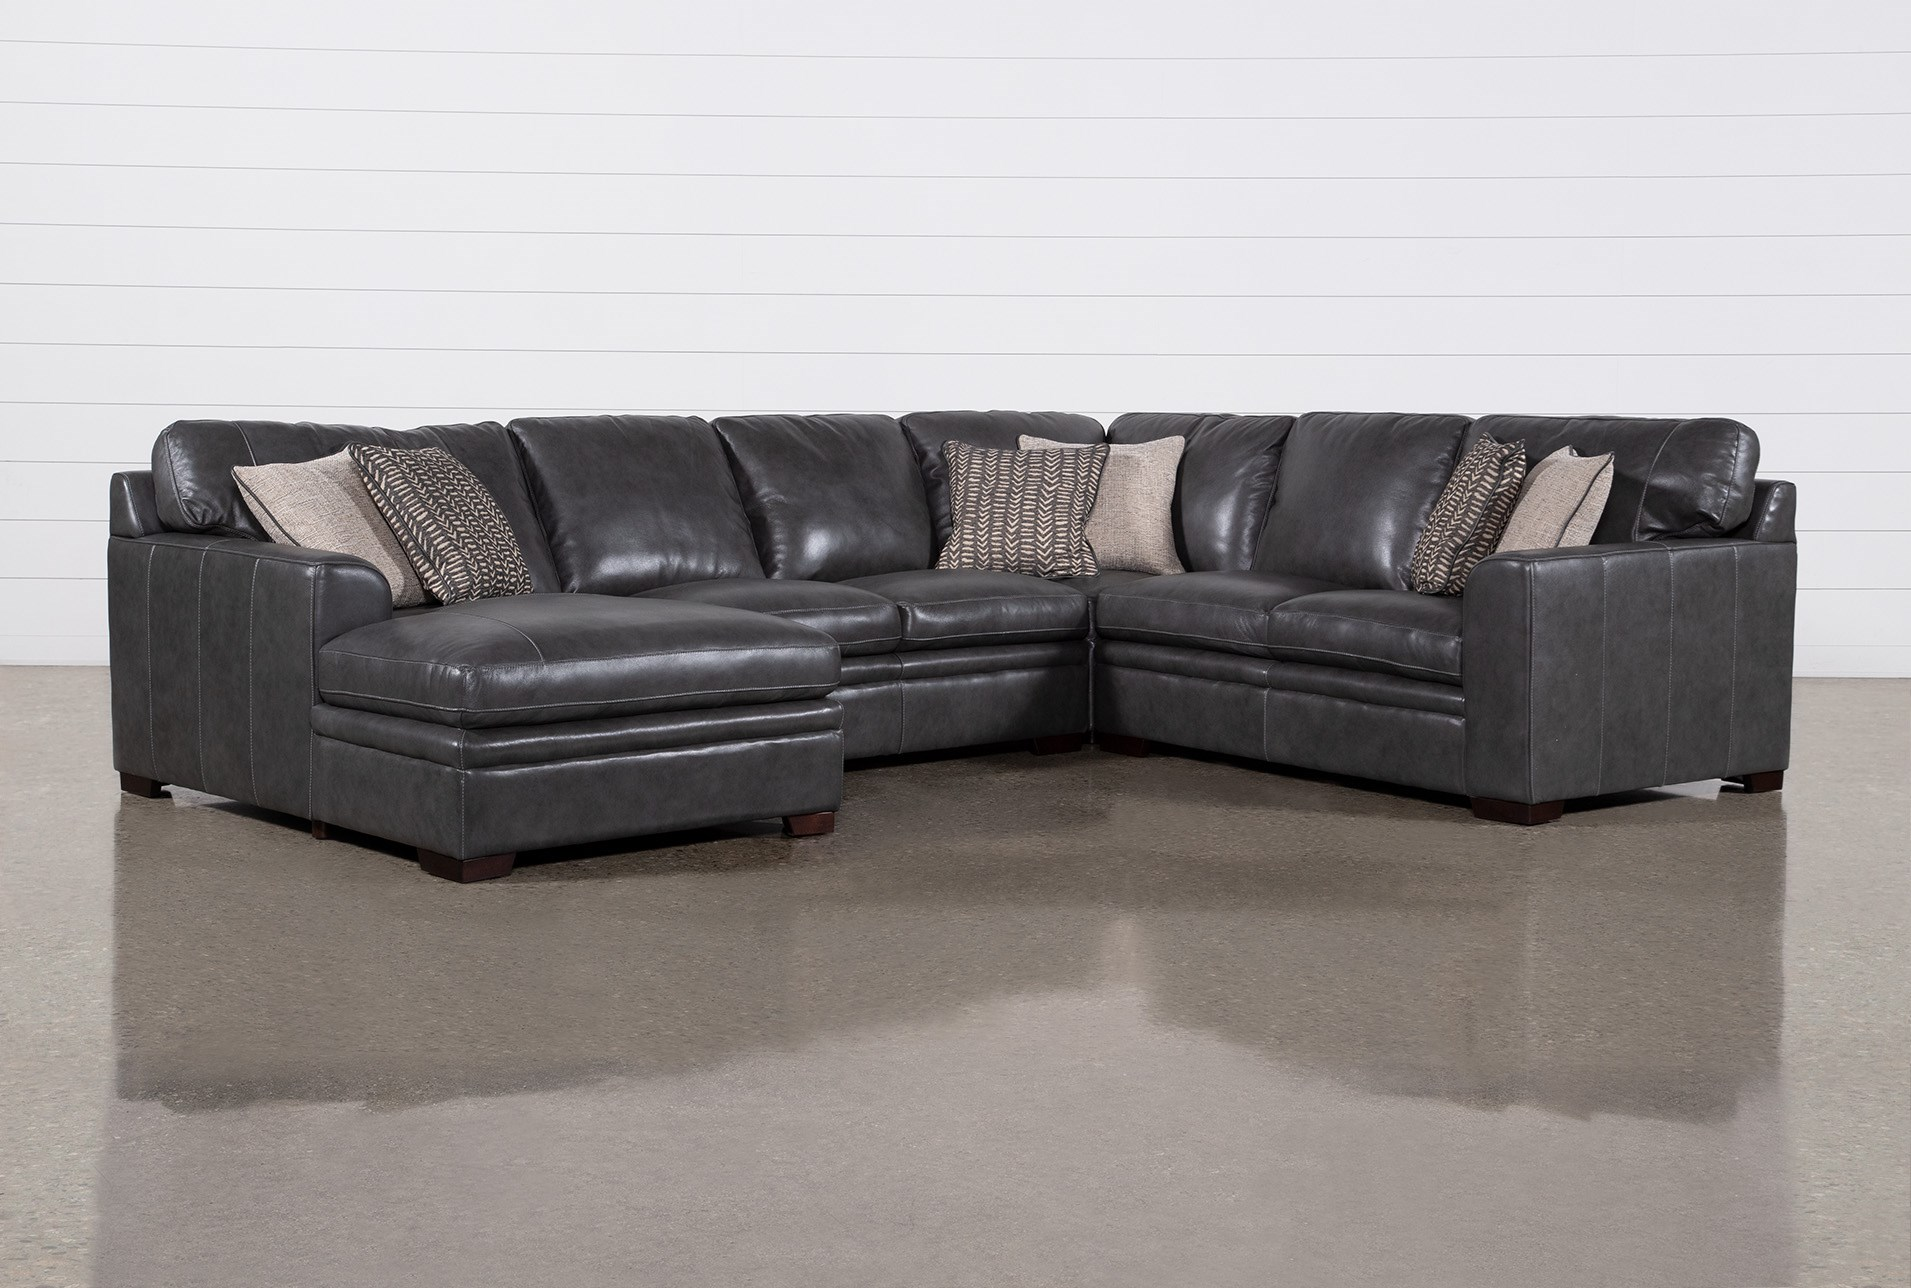 greer dark grey leather 4 piece 143 sectional with left arm facing chaise armless loveseat